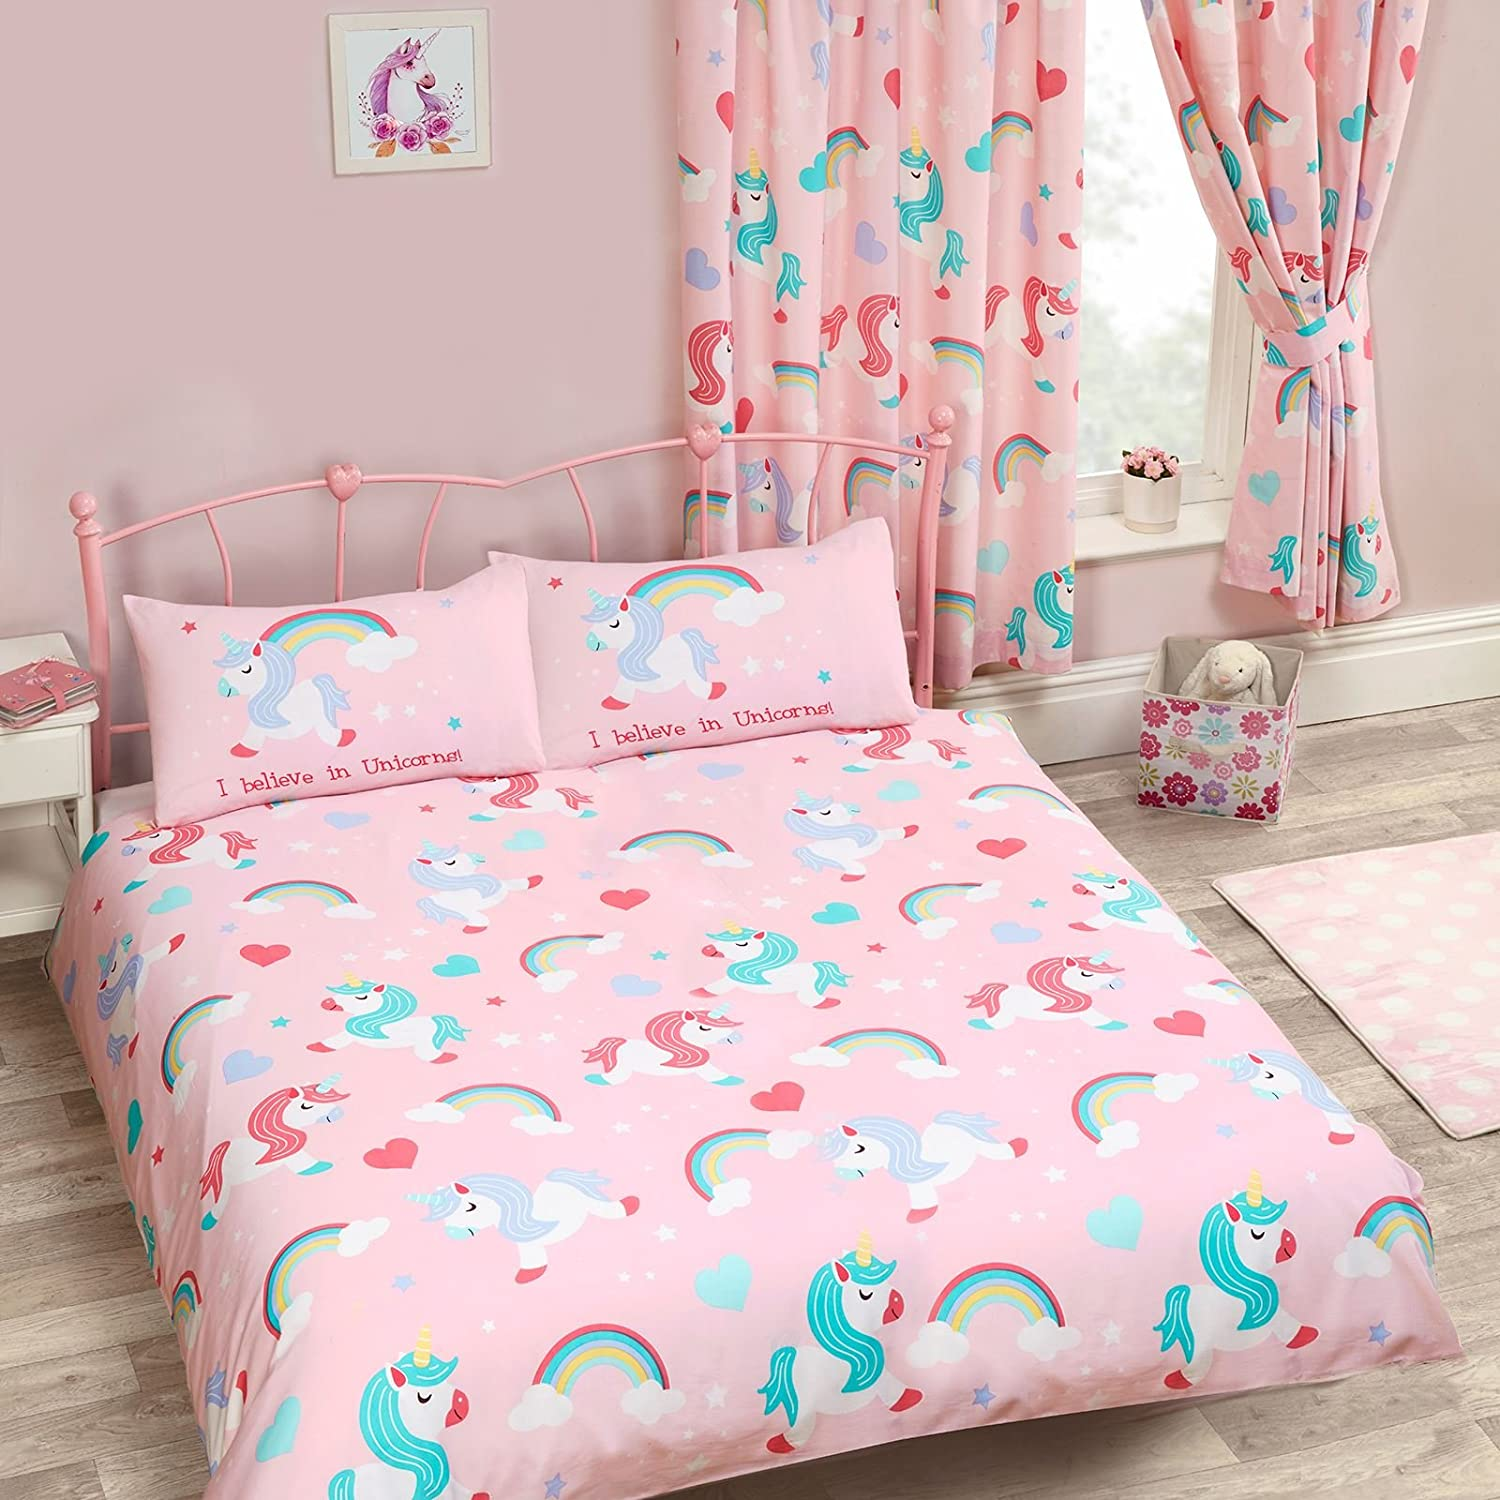 Price Right Home I Believe in Unicorns Double Duvet Cover and Pillowcase Set + Matching Fully Lined 66